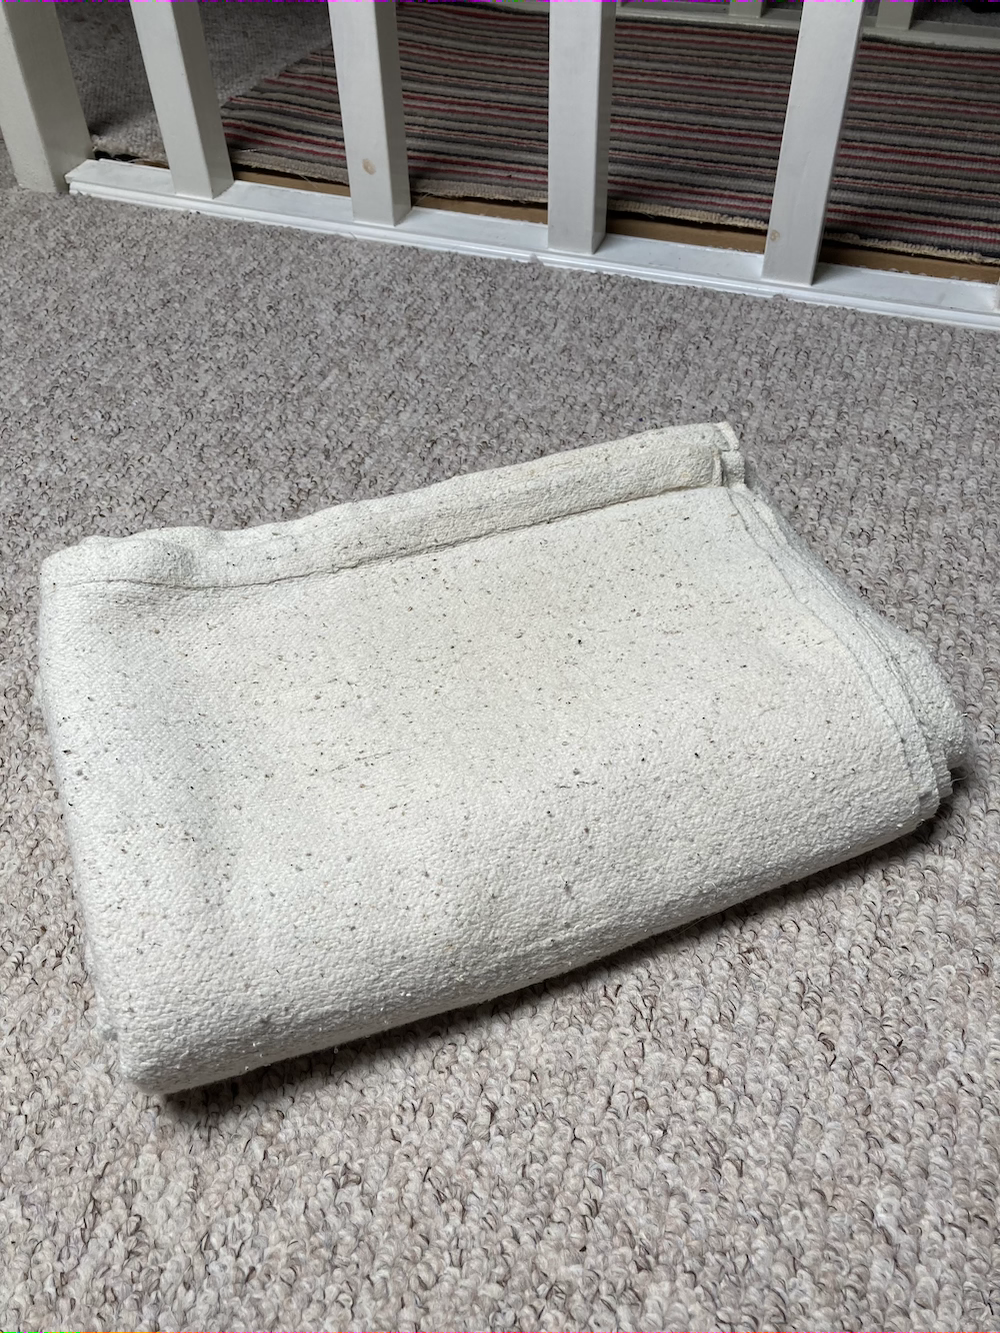 Indian cotton yoga blanket